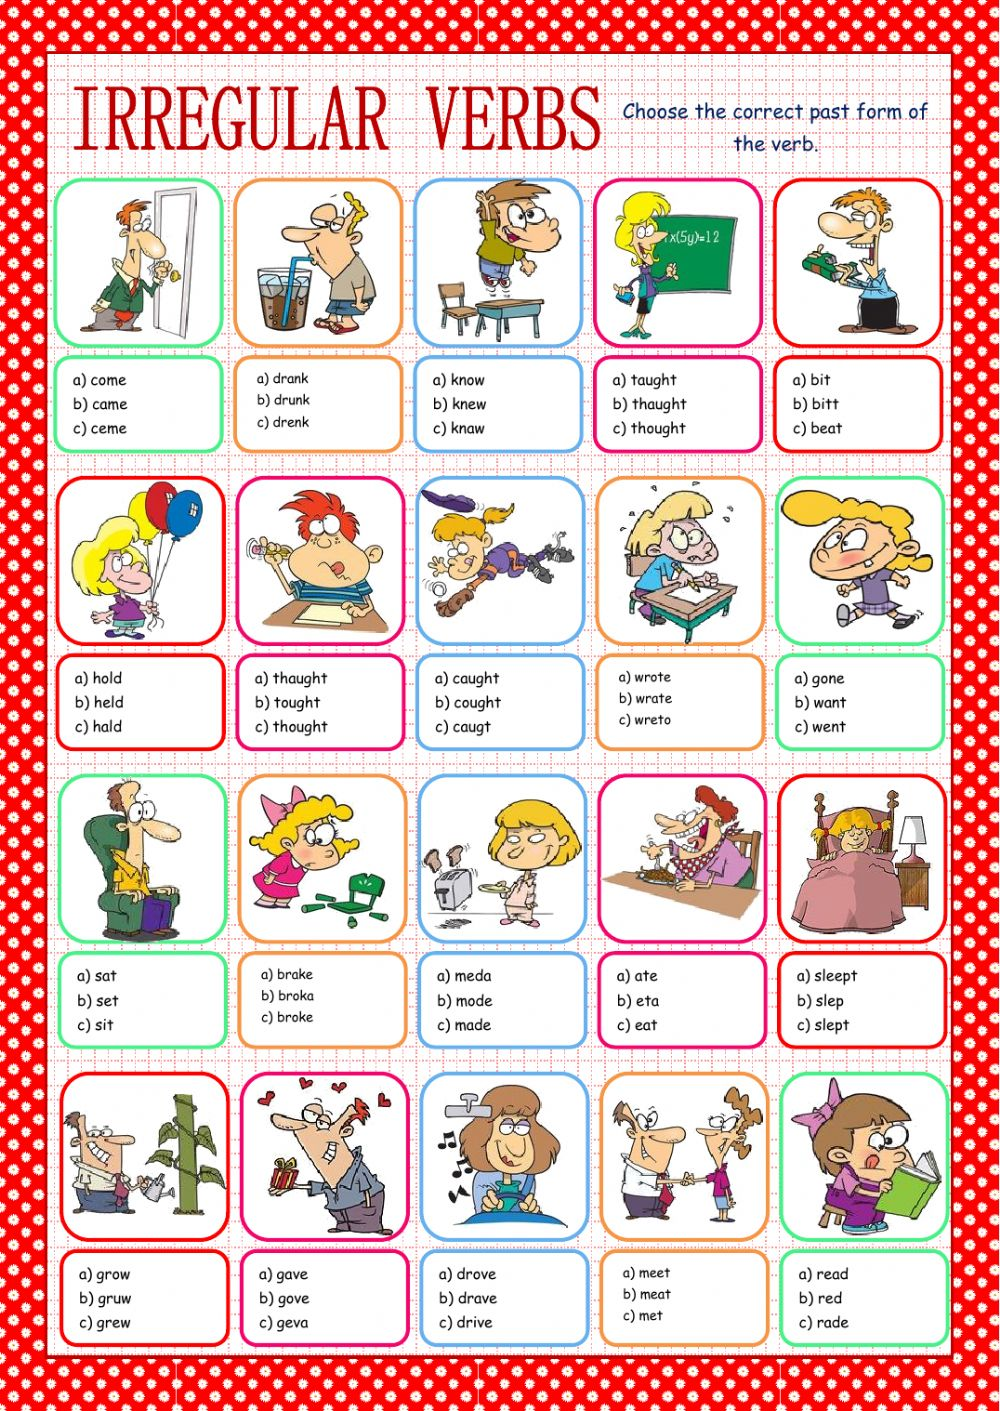 Irregular verbs Interactive worksheet